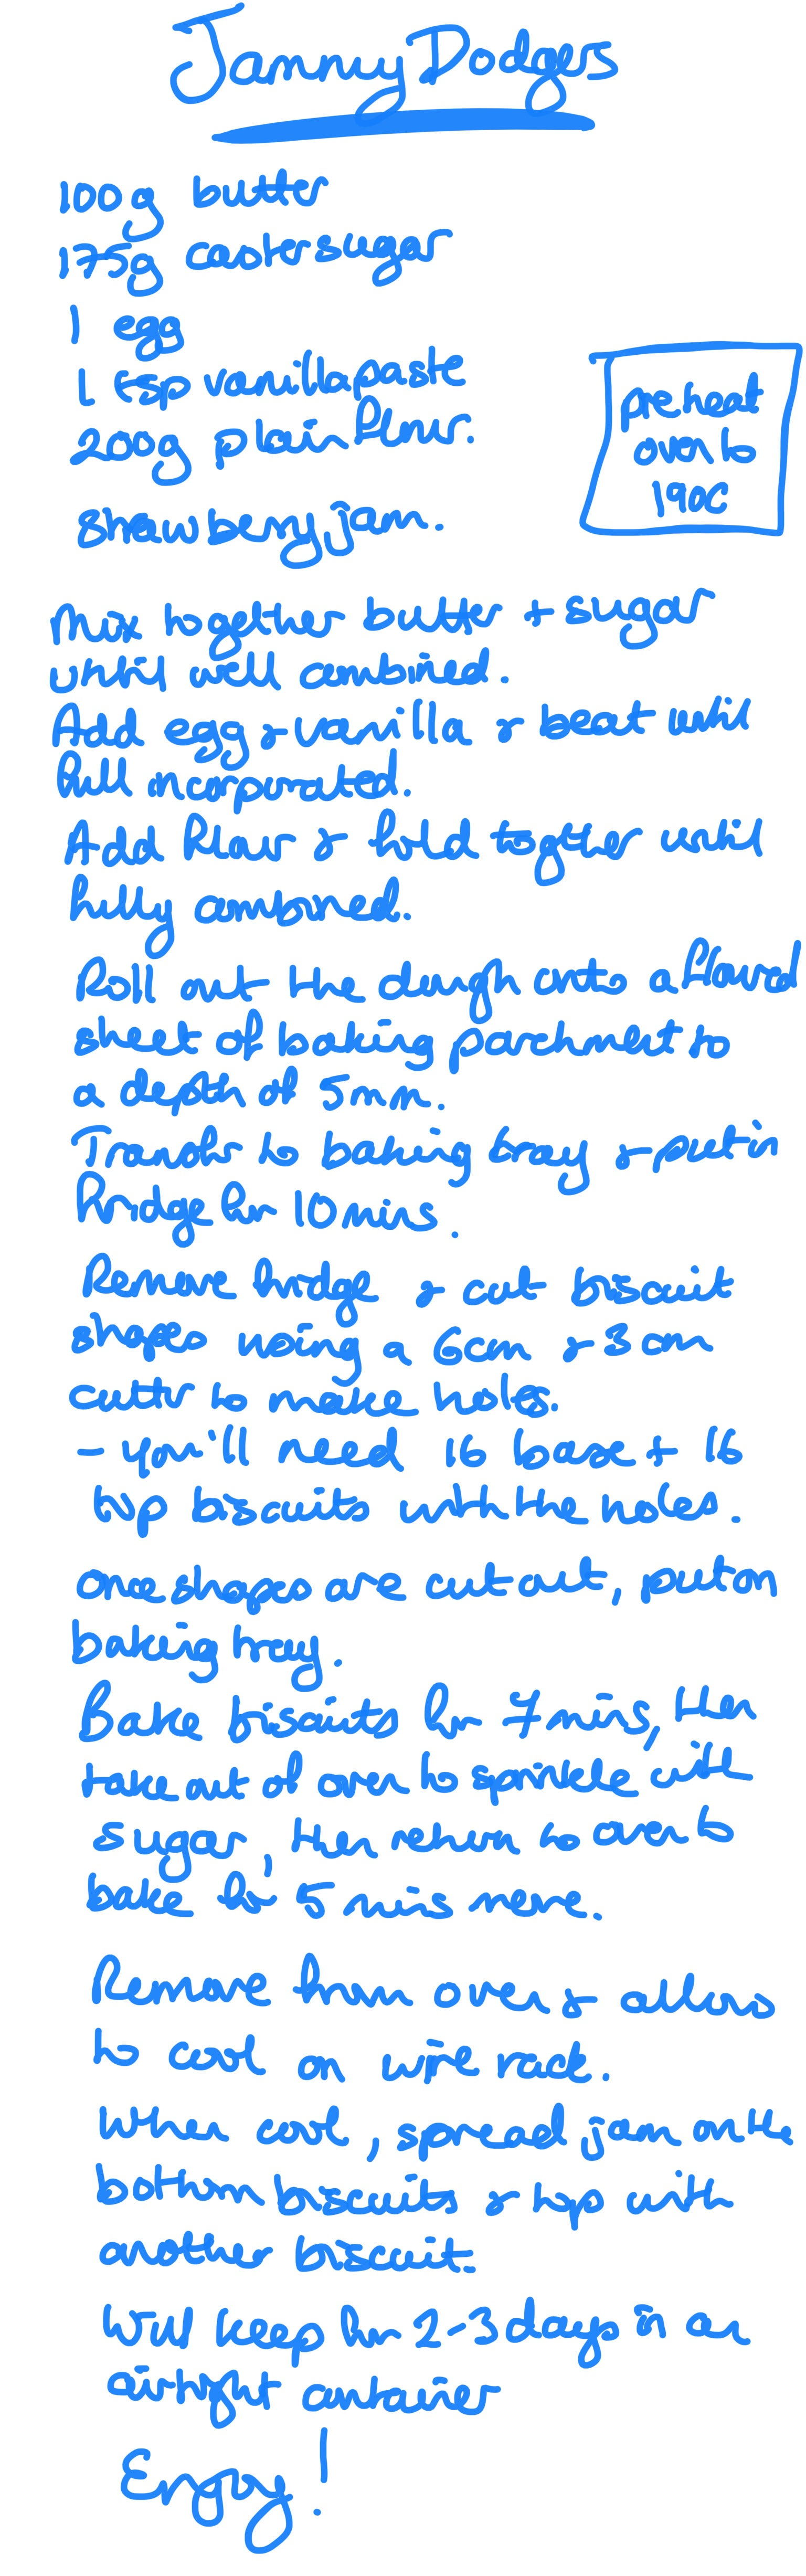 jammy dodgers recipe